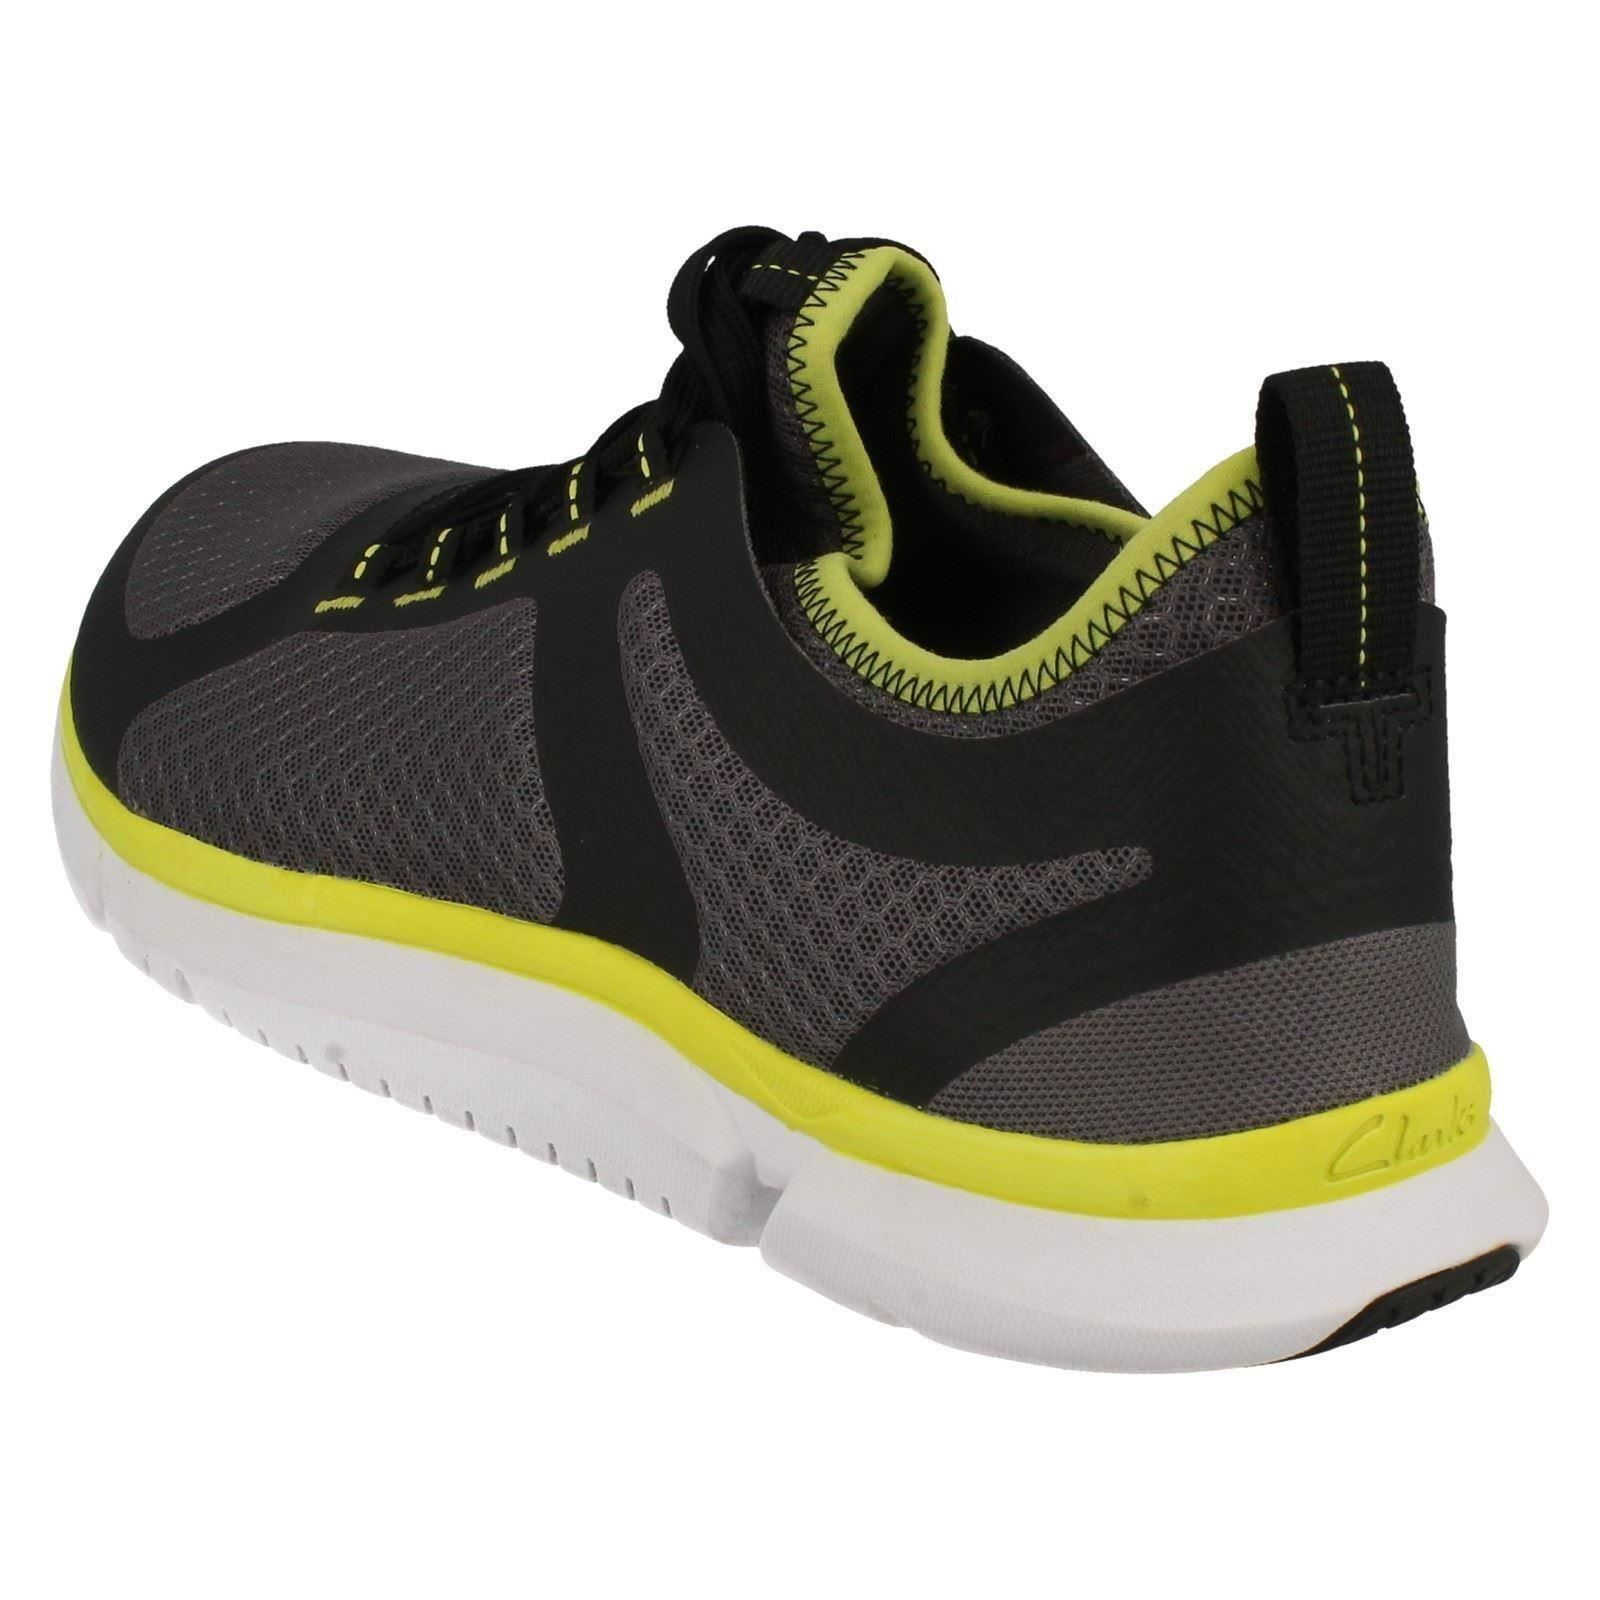 Mens-Clarks-Triken-Active-Casual-Trainers thumbnail 4